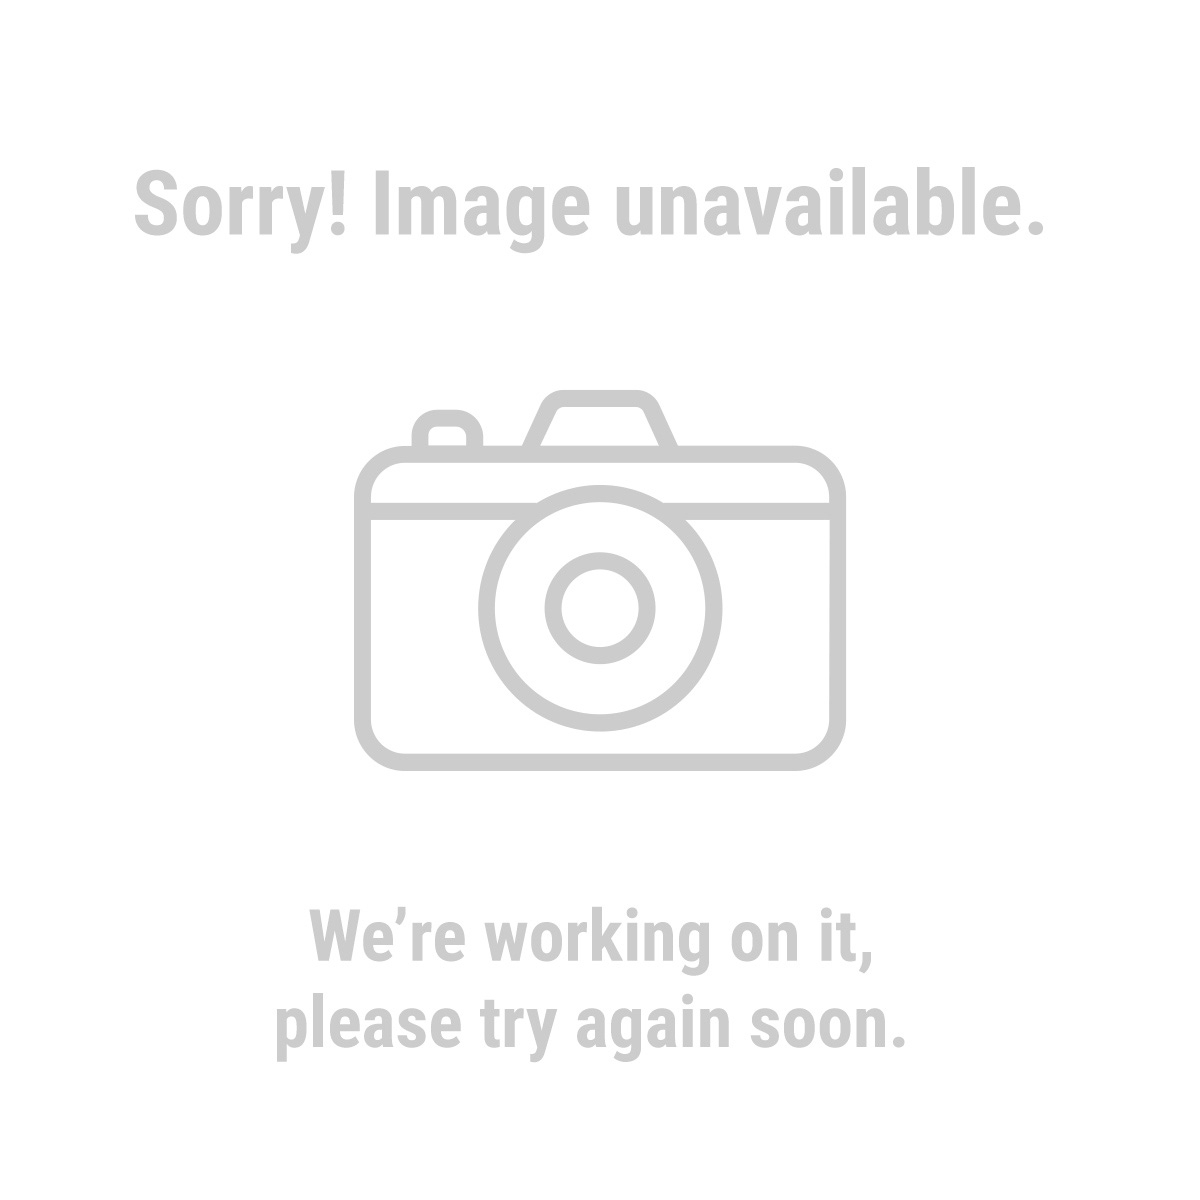 U.S. General Pro 61656 72 in. 18 Drawer Glossy Red Industrial Roller Cabinet